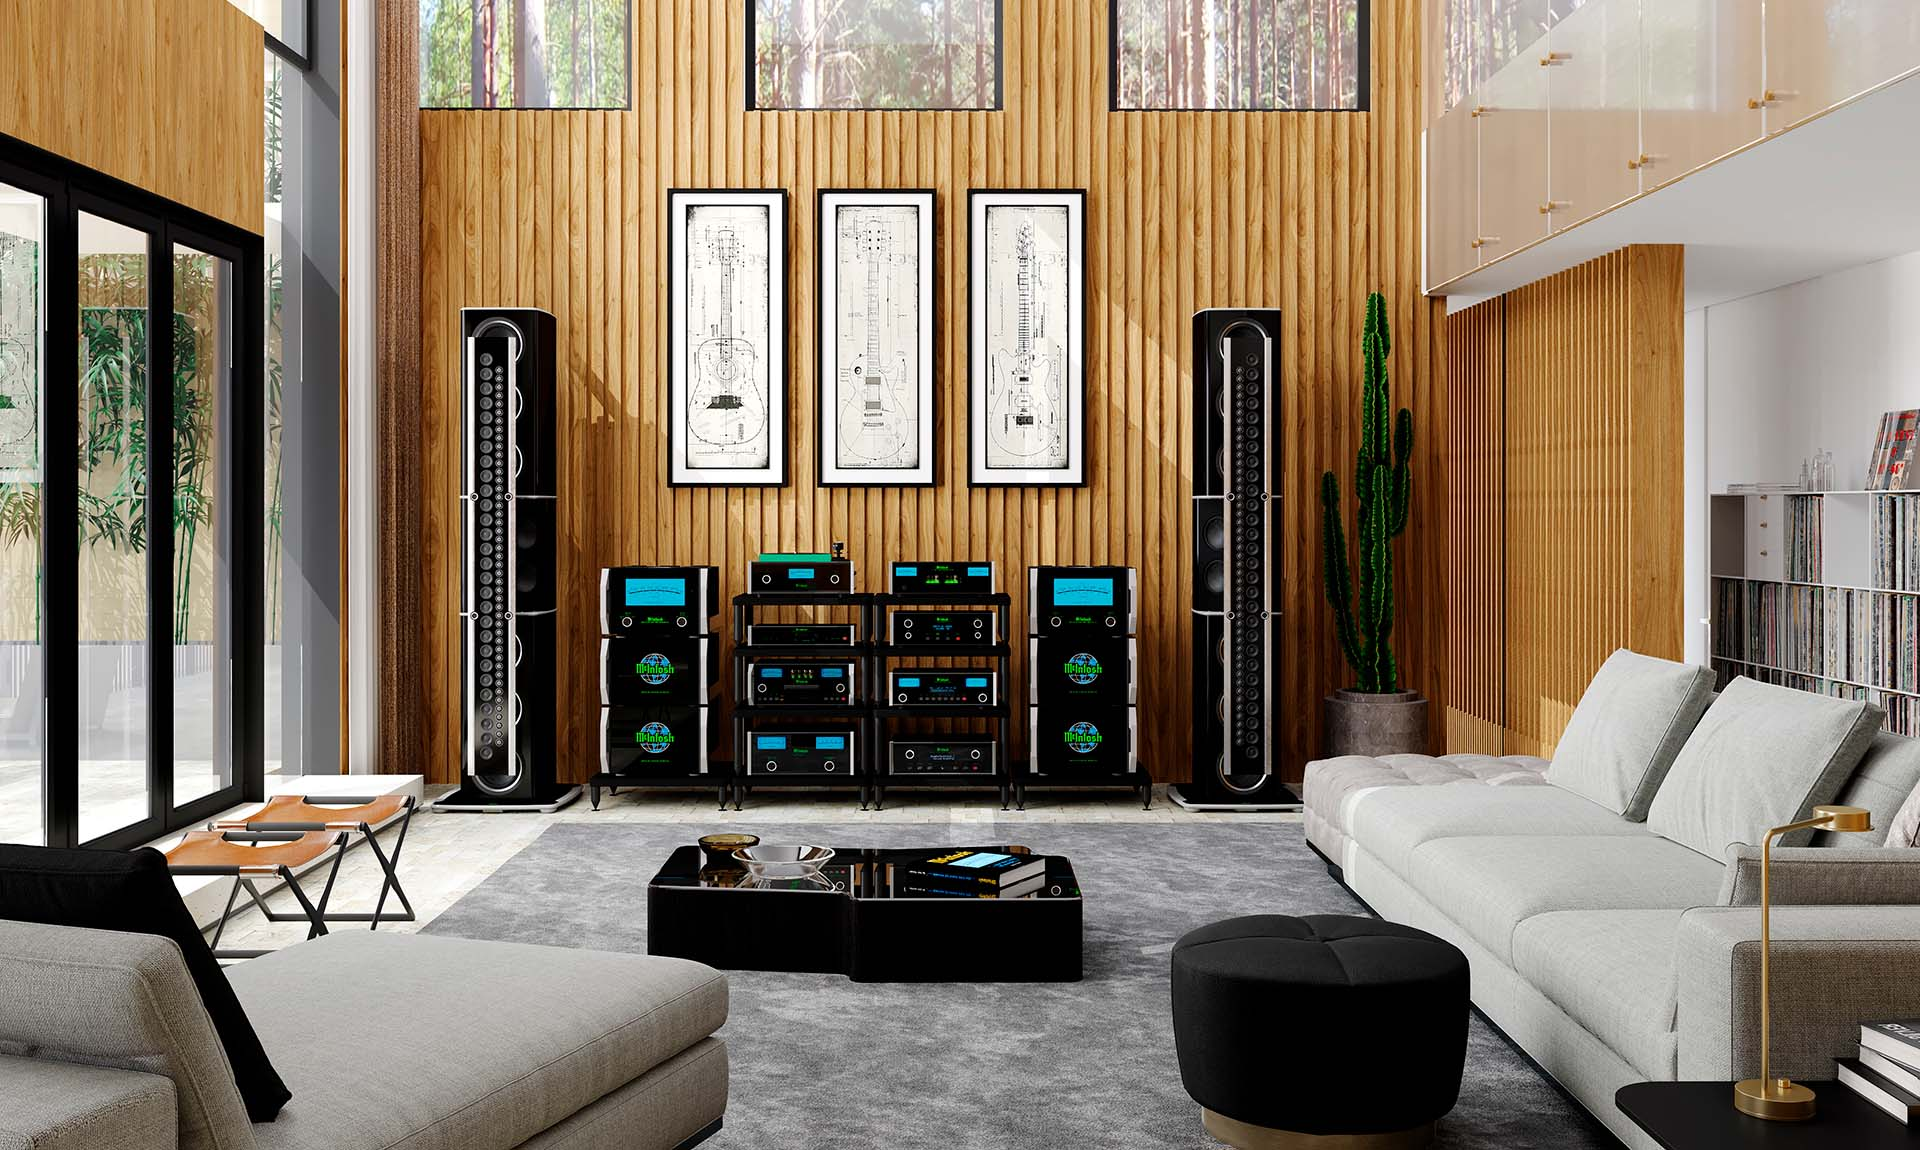 McIntosh Reference home audio music system